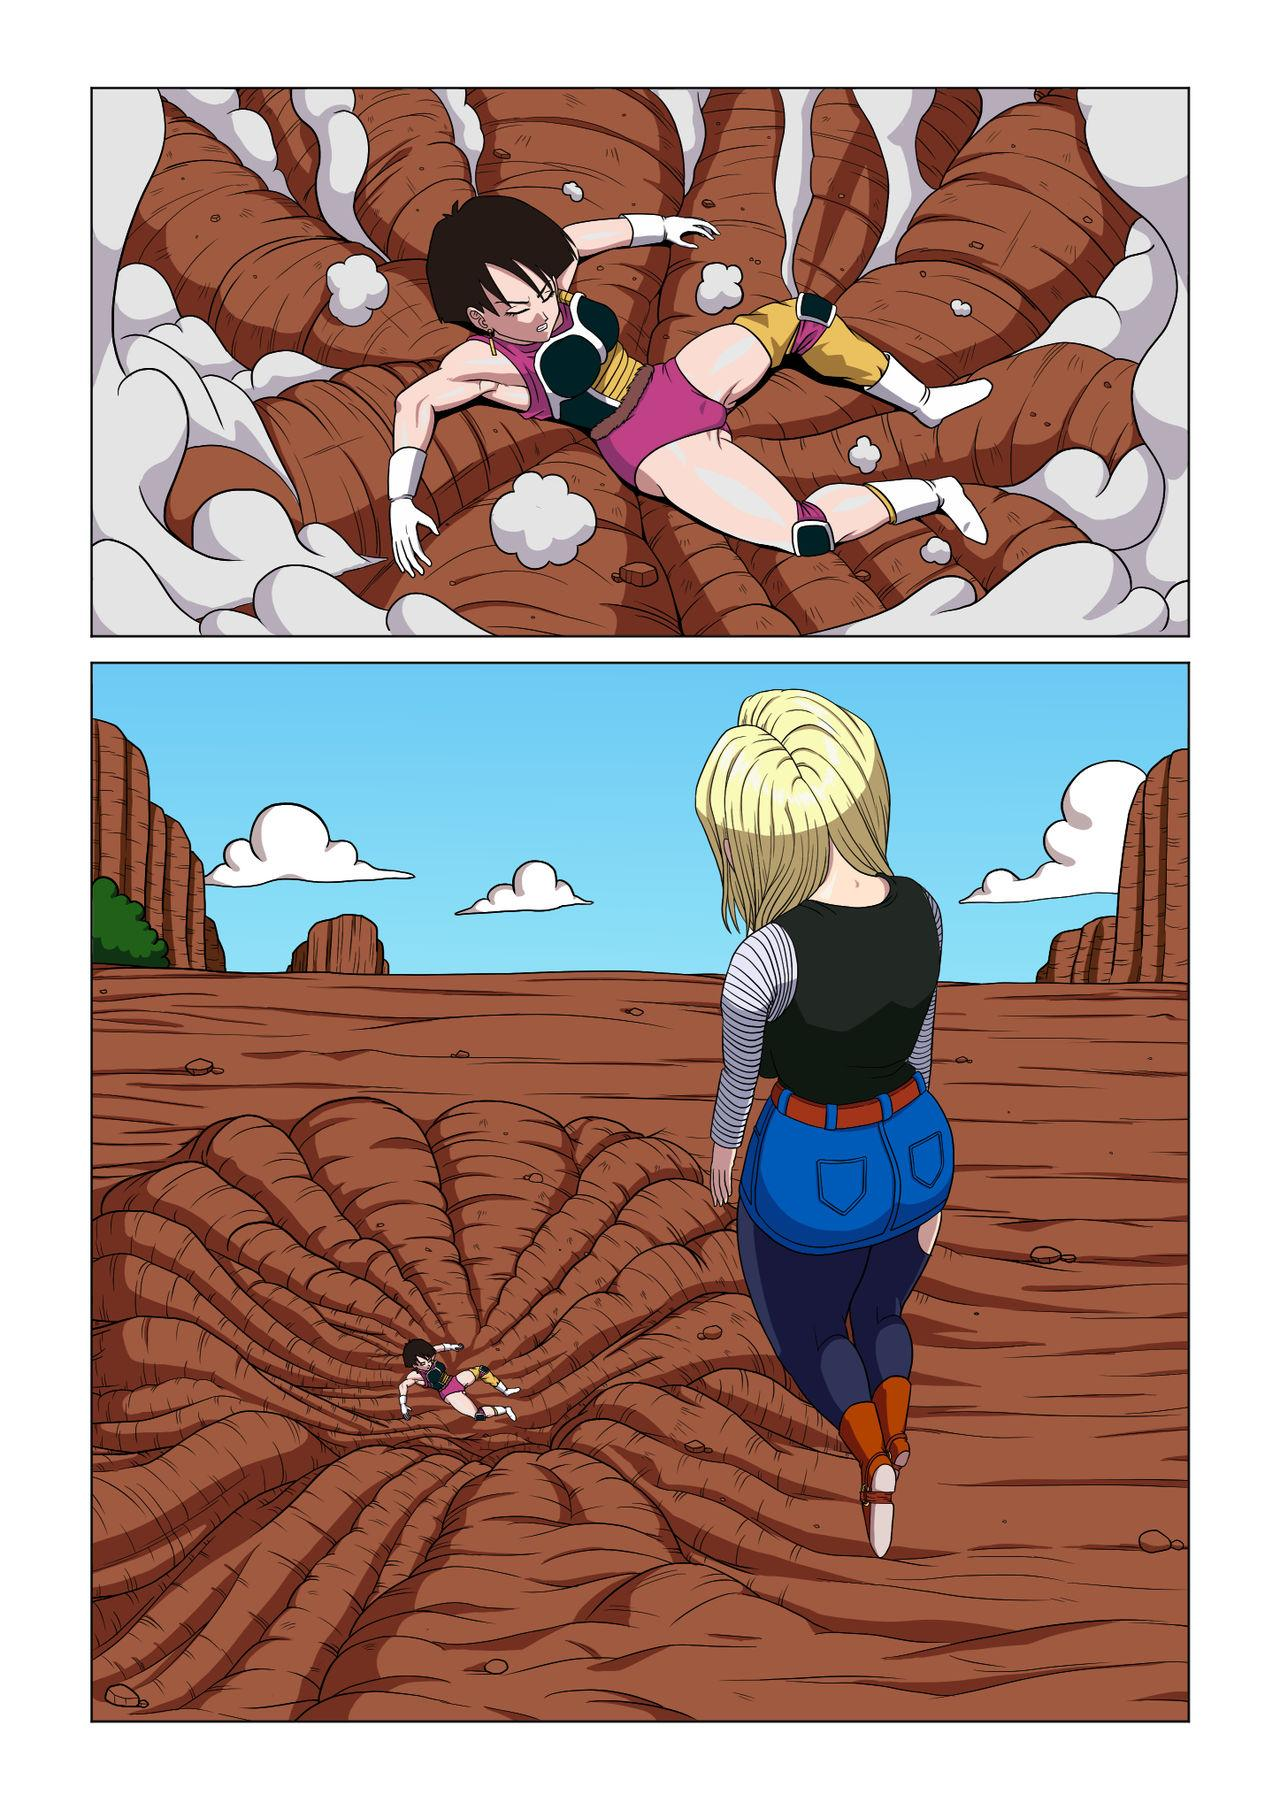 Android 18 vs Baby 12